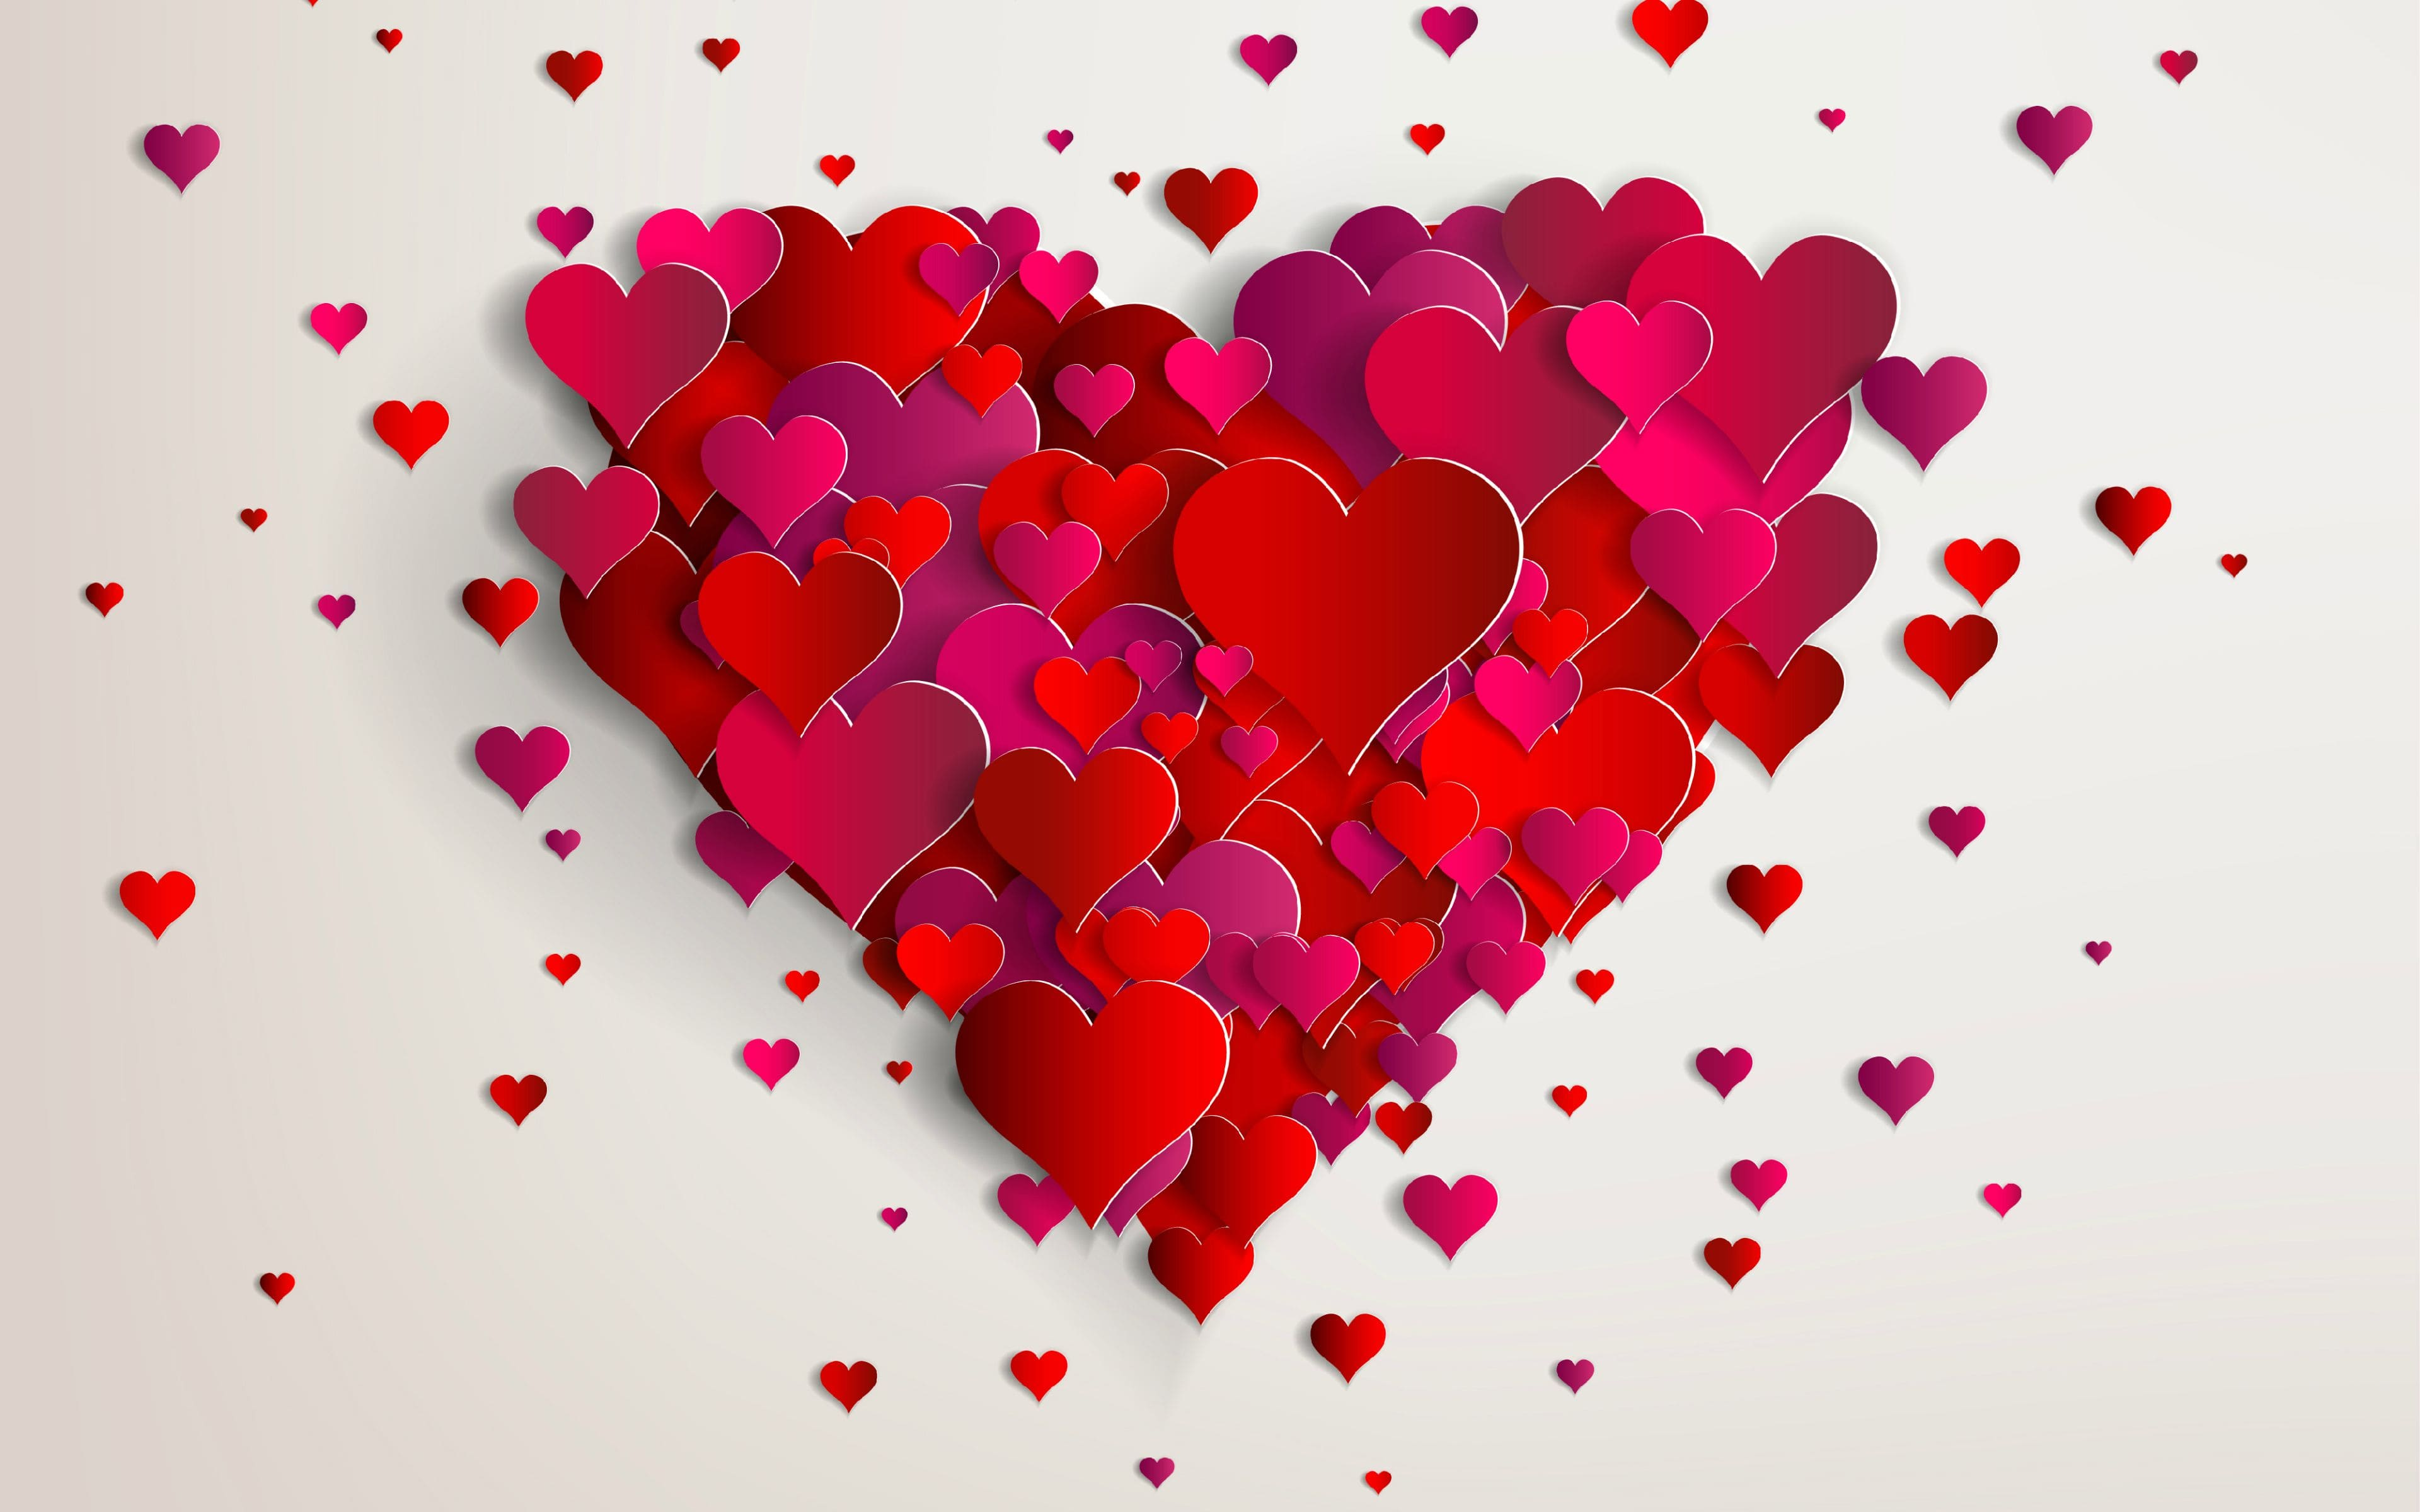 Beautiful Images of Hearts. 240 Quality Photos for Free